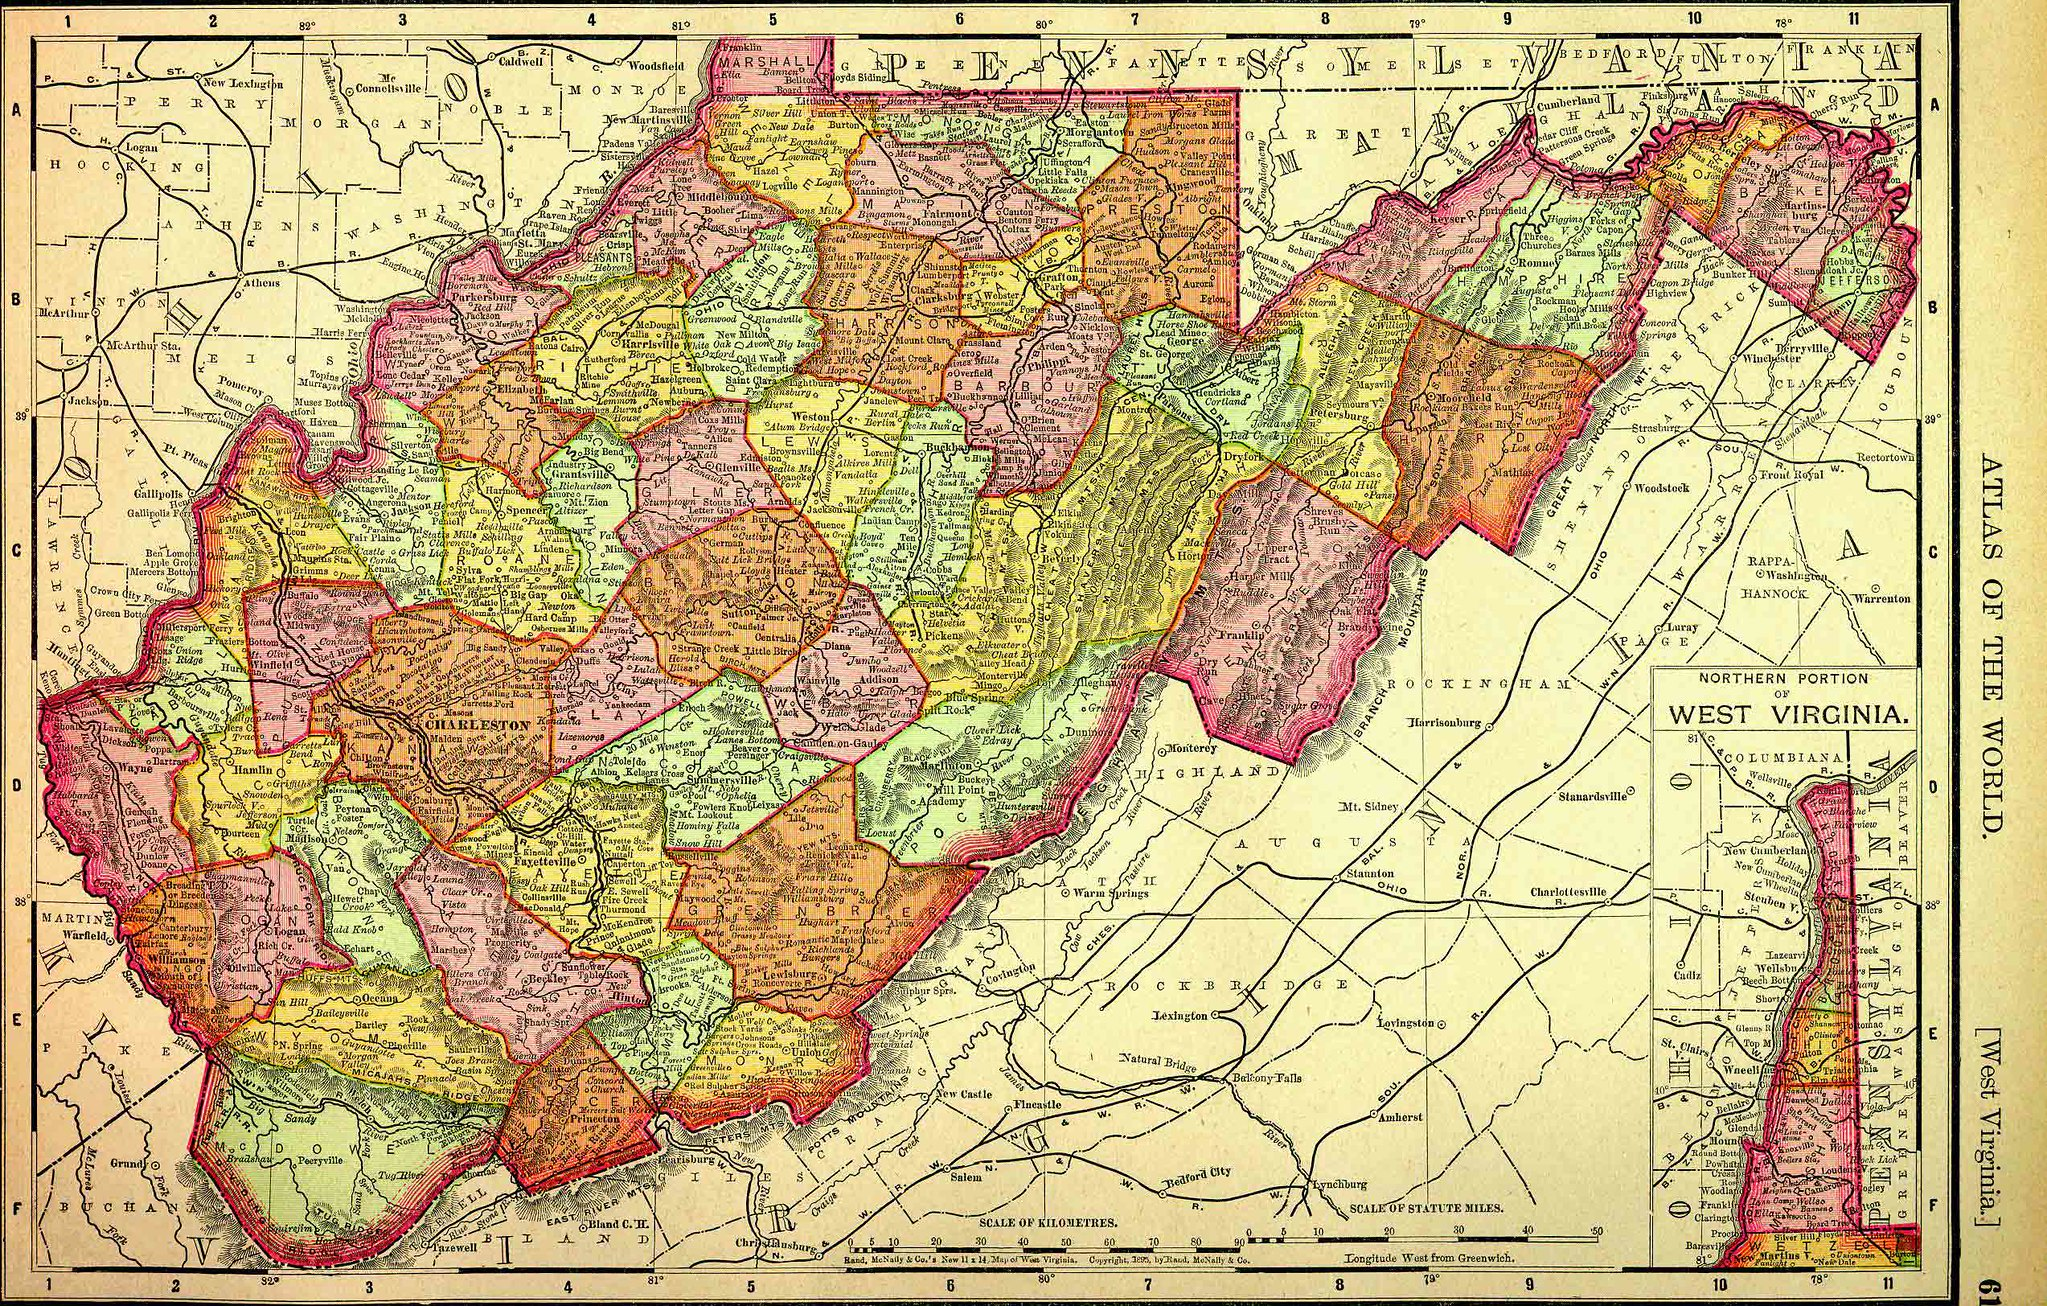 Map Of Virginia And West Virginia Together.West Virginia Map 1895 Traveling 219 The Seneca Trail